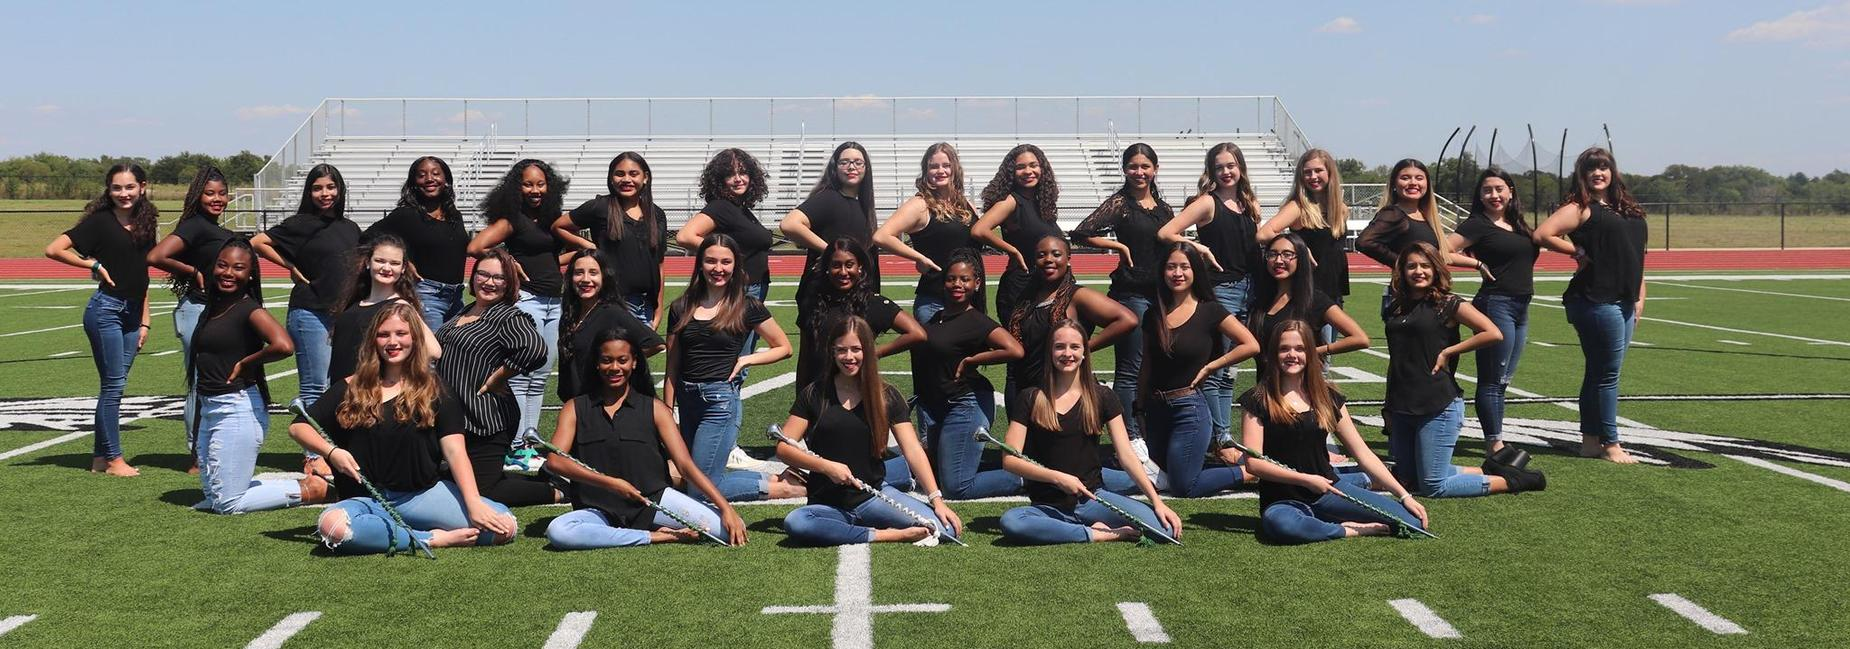 large group of girls posing together on a football field in black shirts & jeans